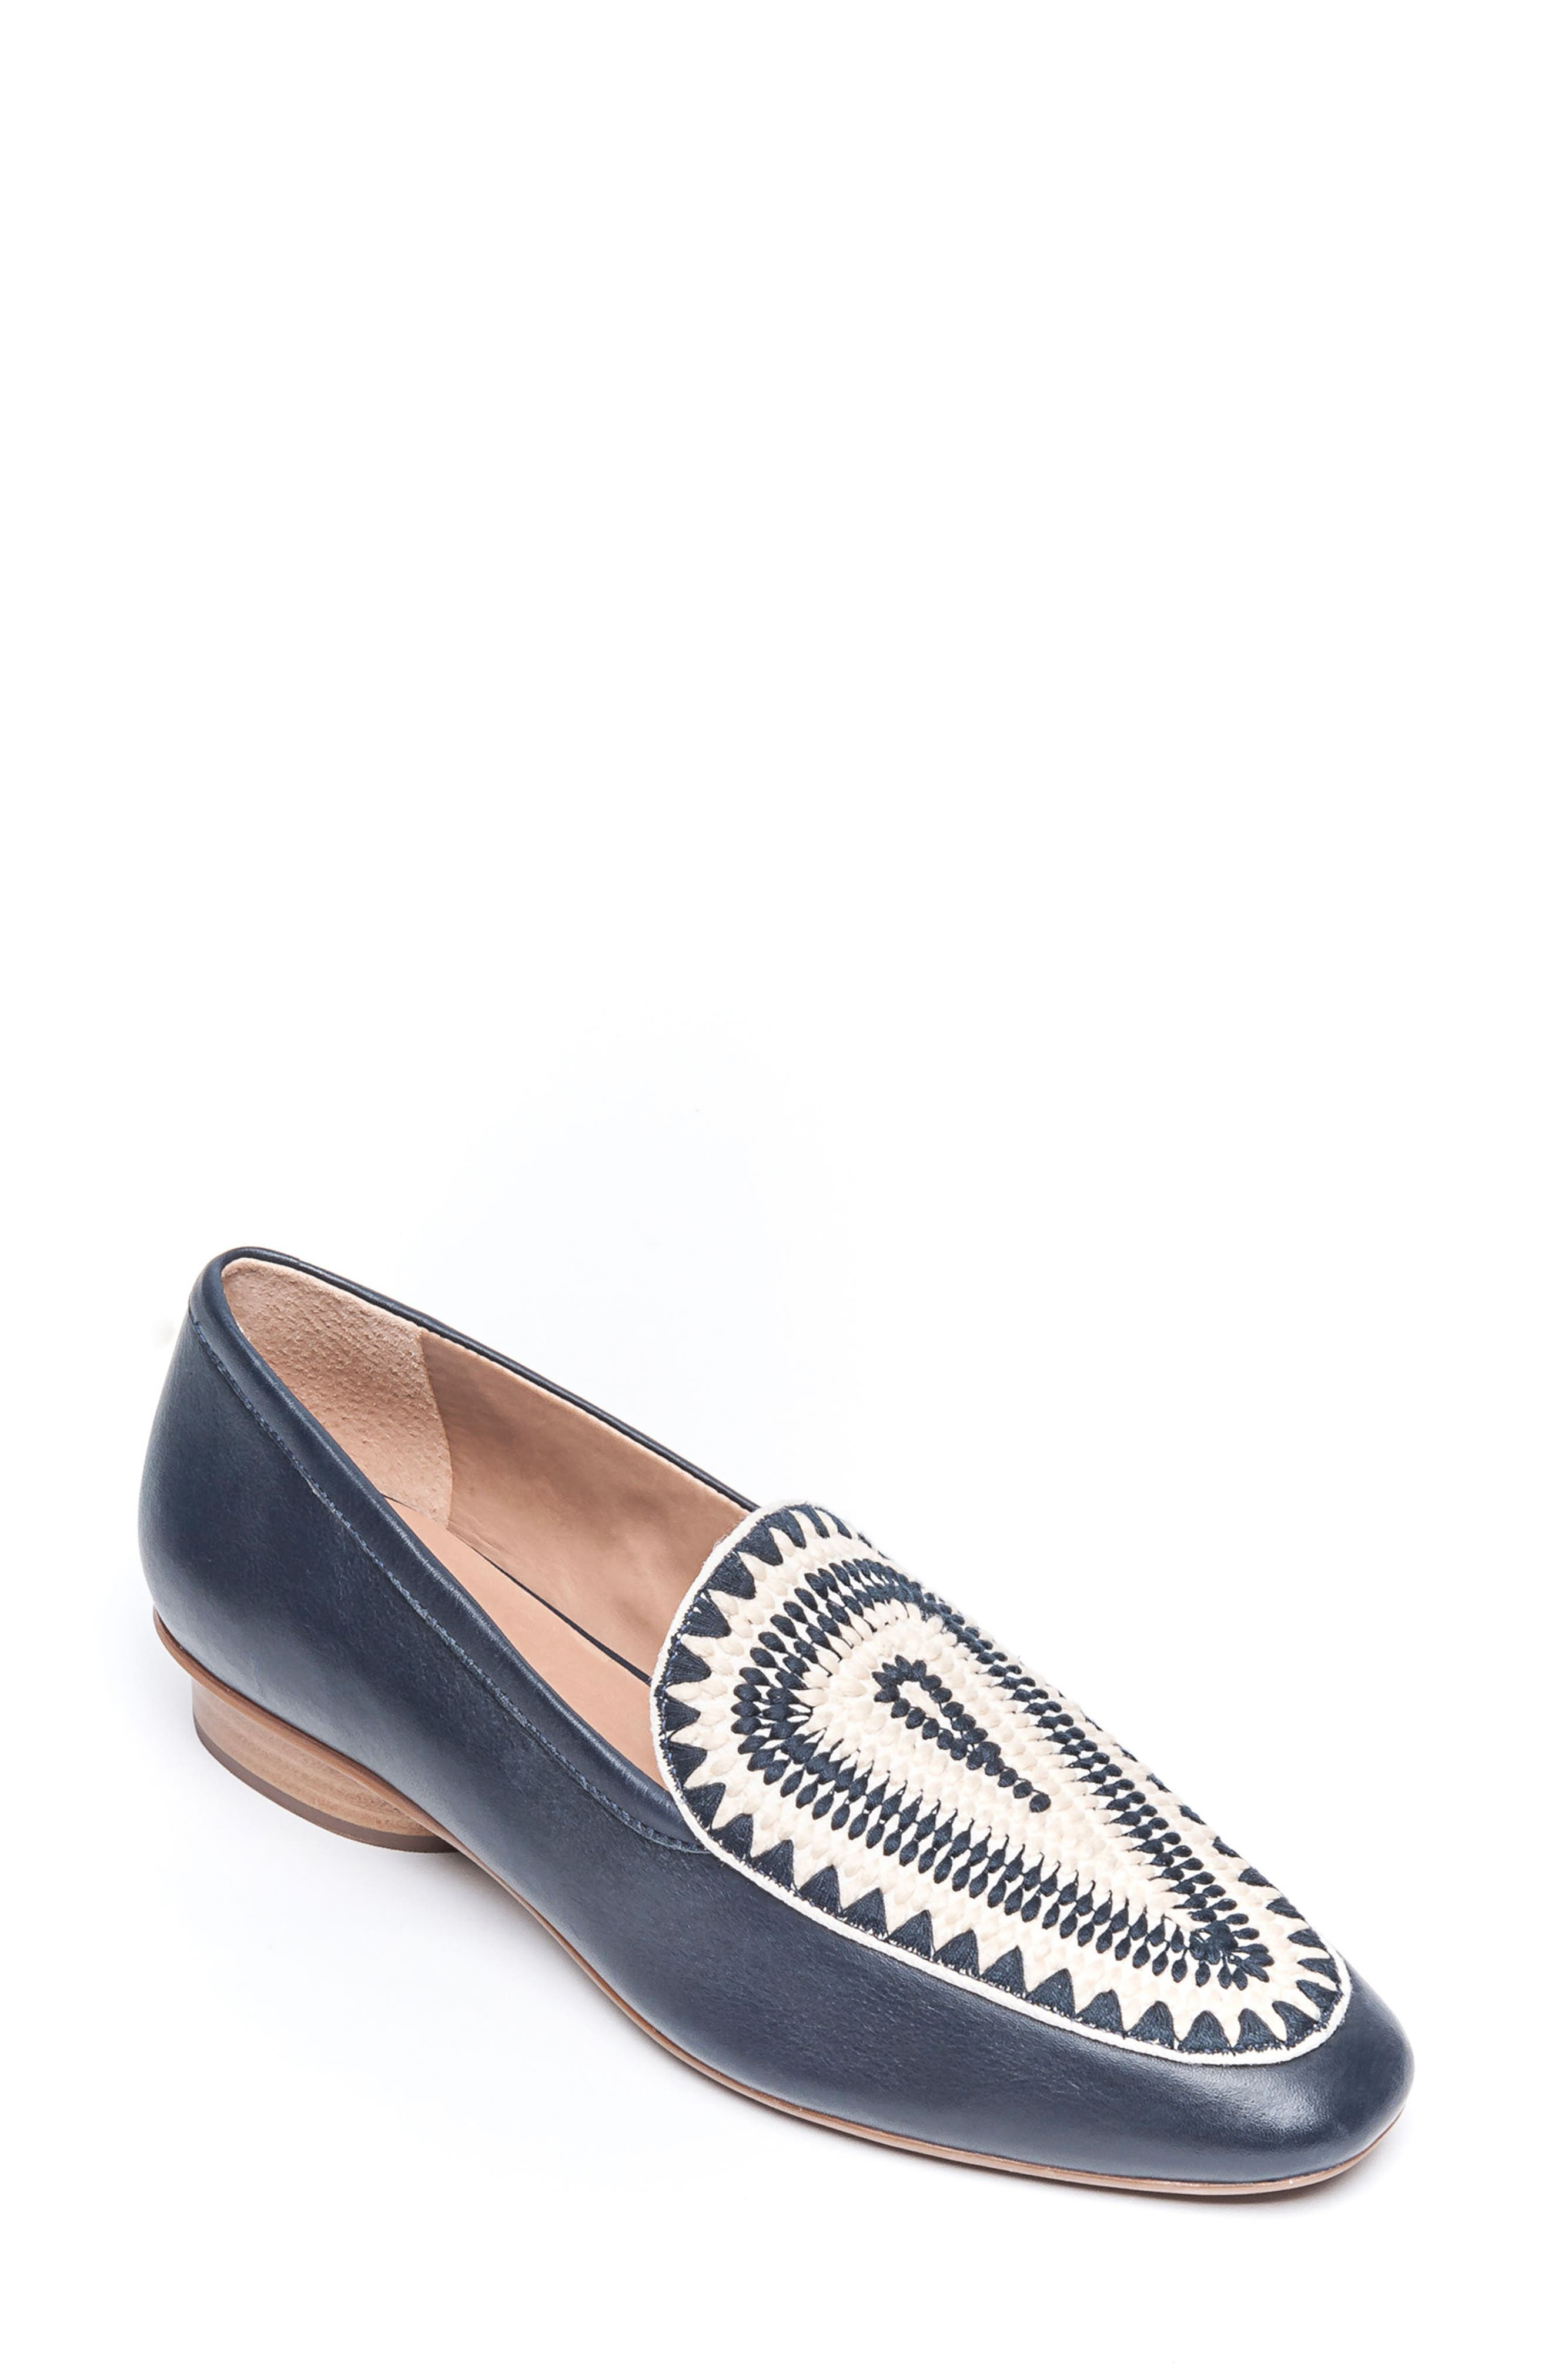 Bernardo Jace Loafer, Blue